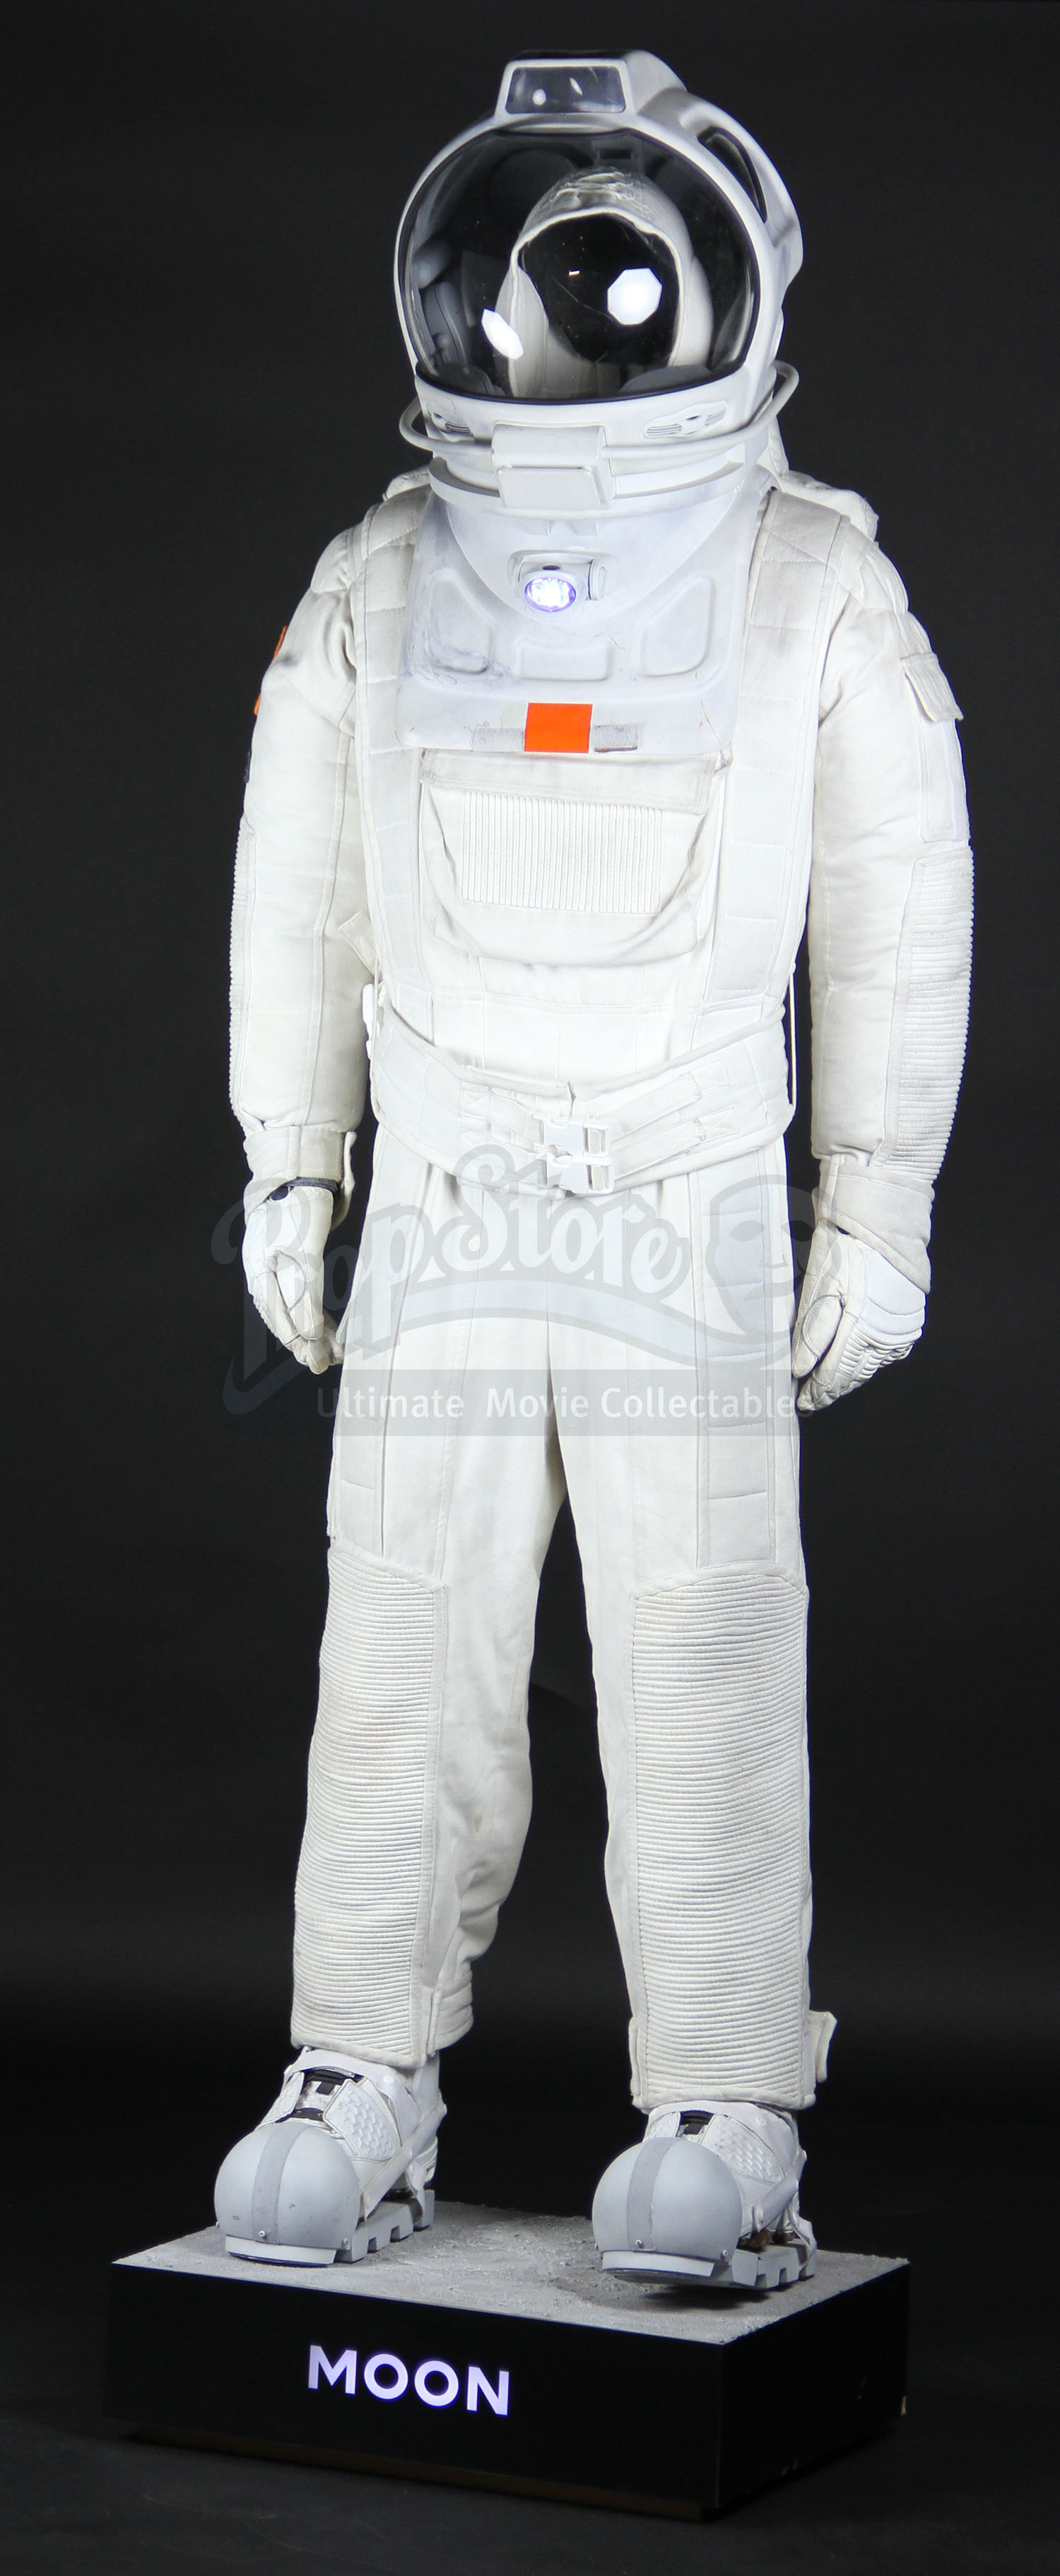 space suits for the moon - photo #32